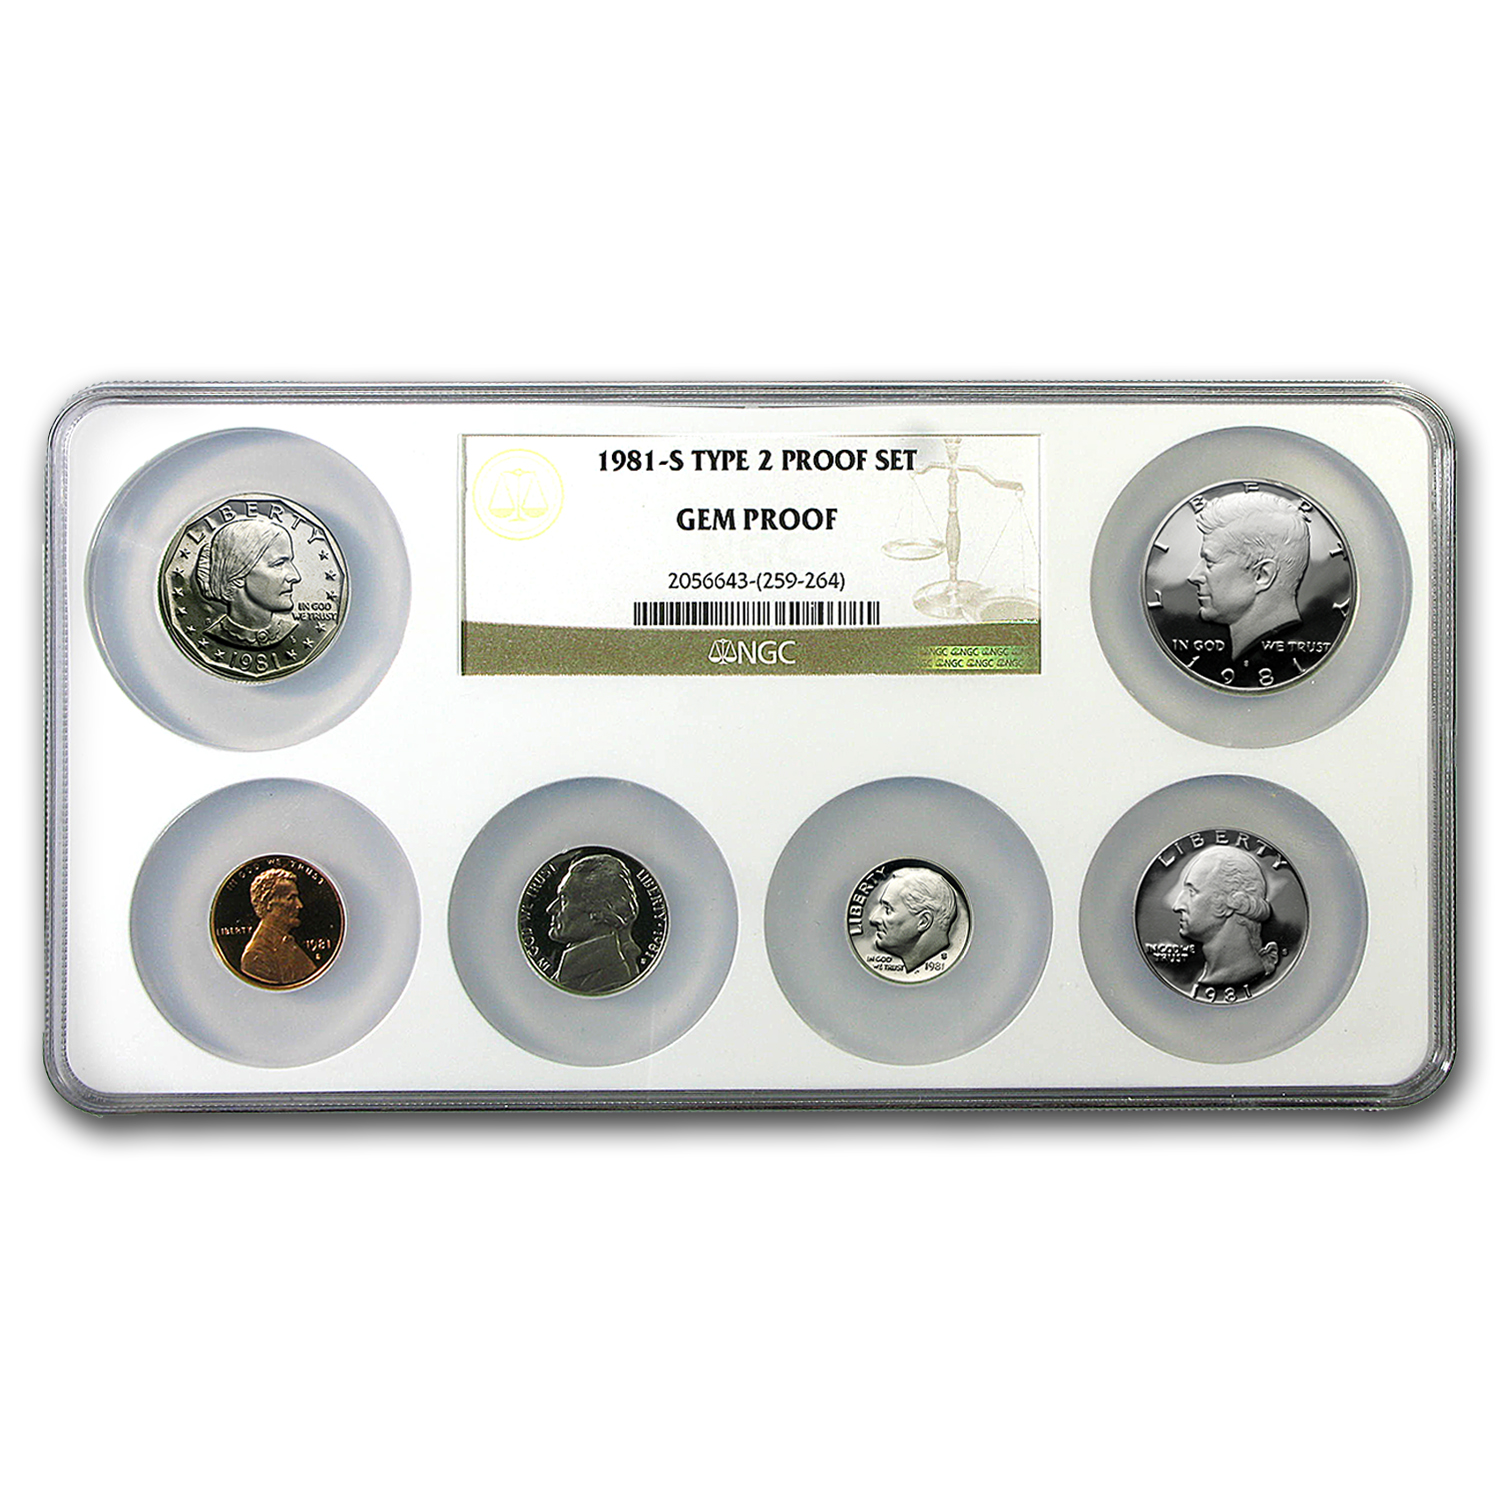 1981 U.S. Proof Set Gem Proof NGC (Type 2, Multicoin Holder)